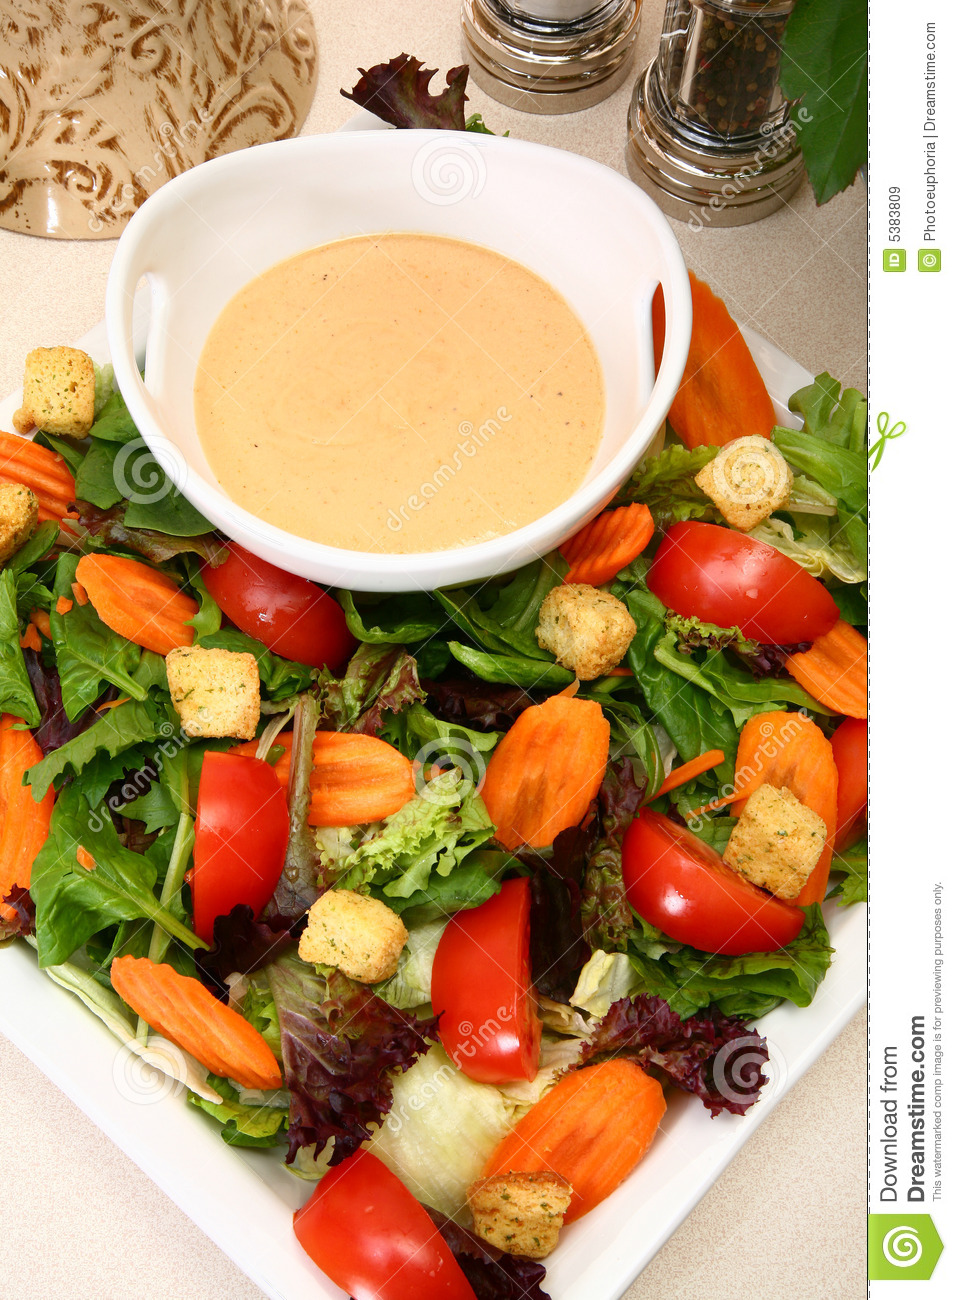 how to make homemade french dressing